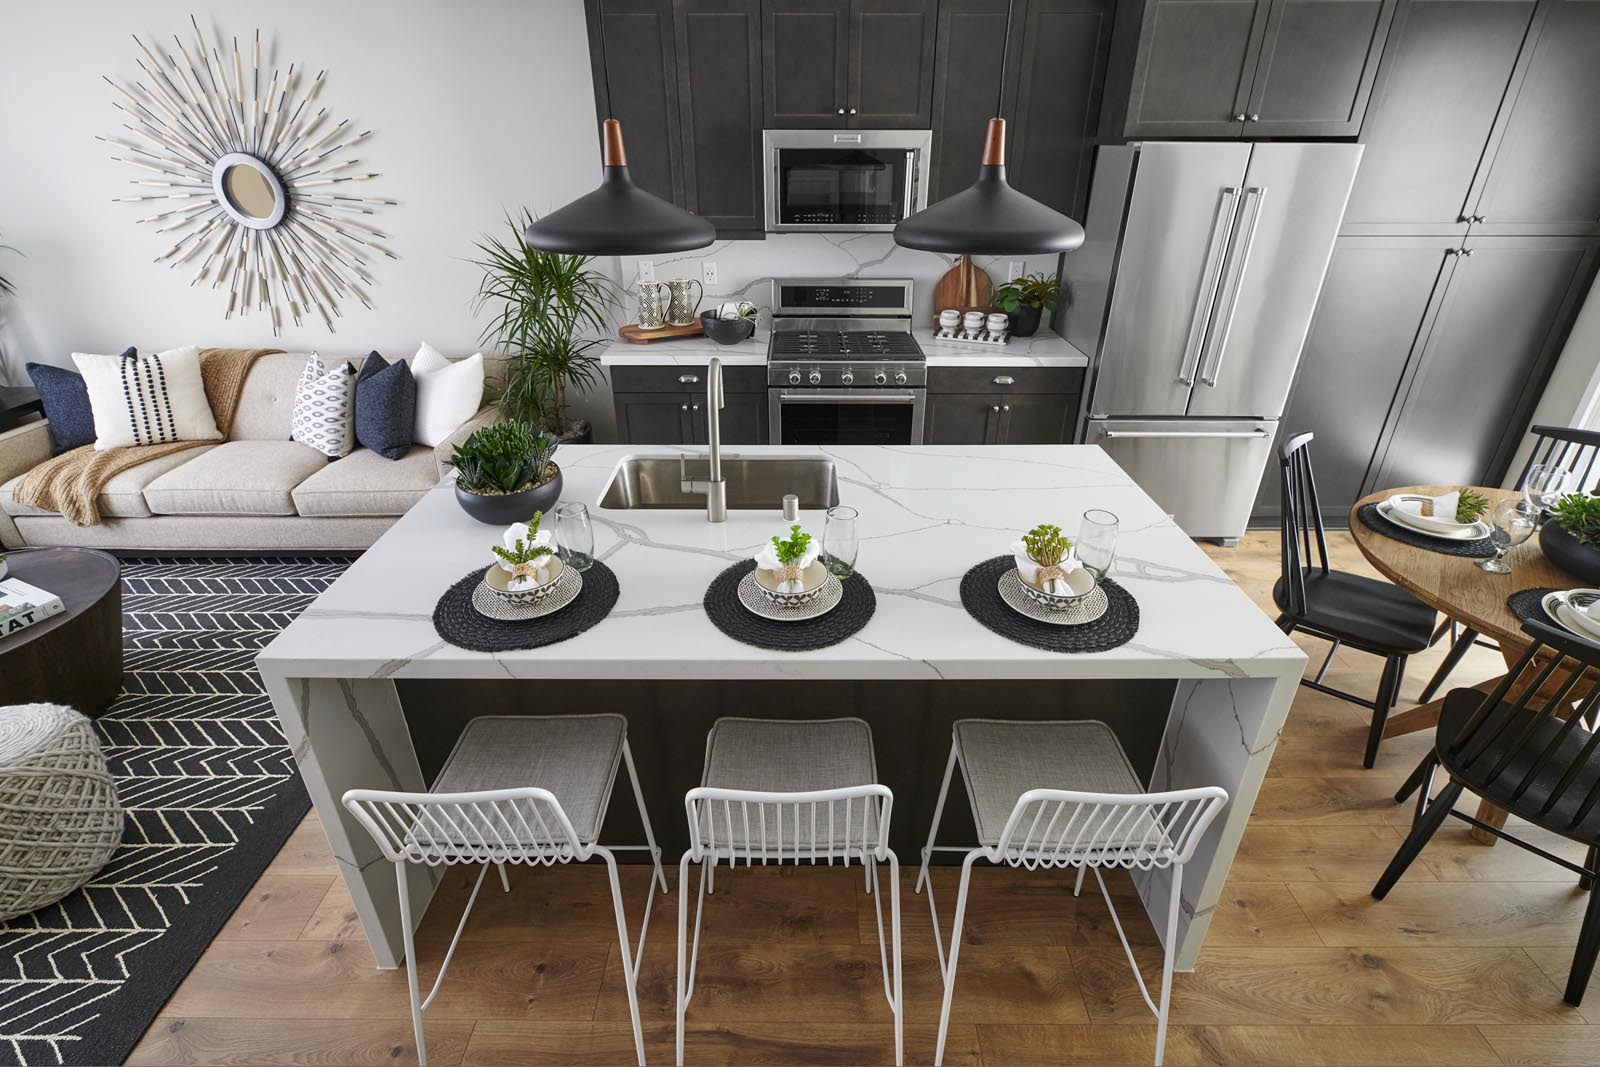 Kitchen   Residence 2   Enliven   New Homes in Rancho Cucamonga, CA   Van Daele Homes